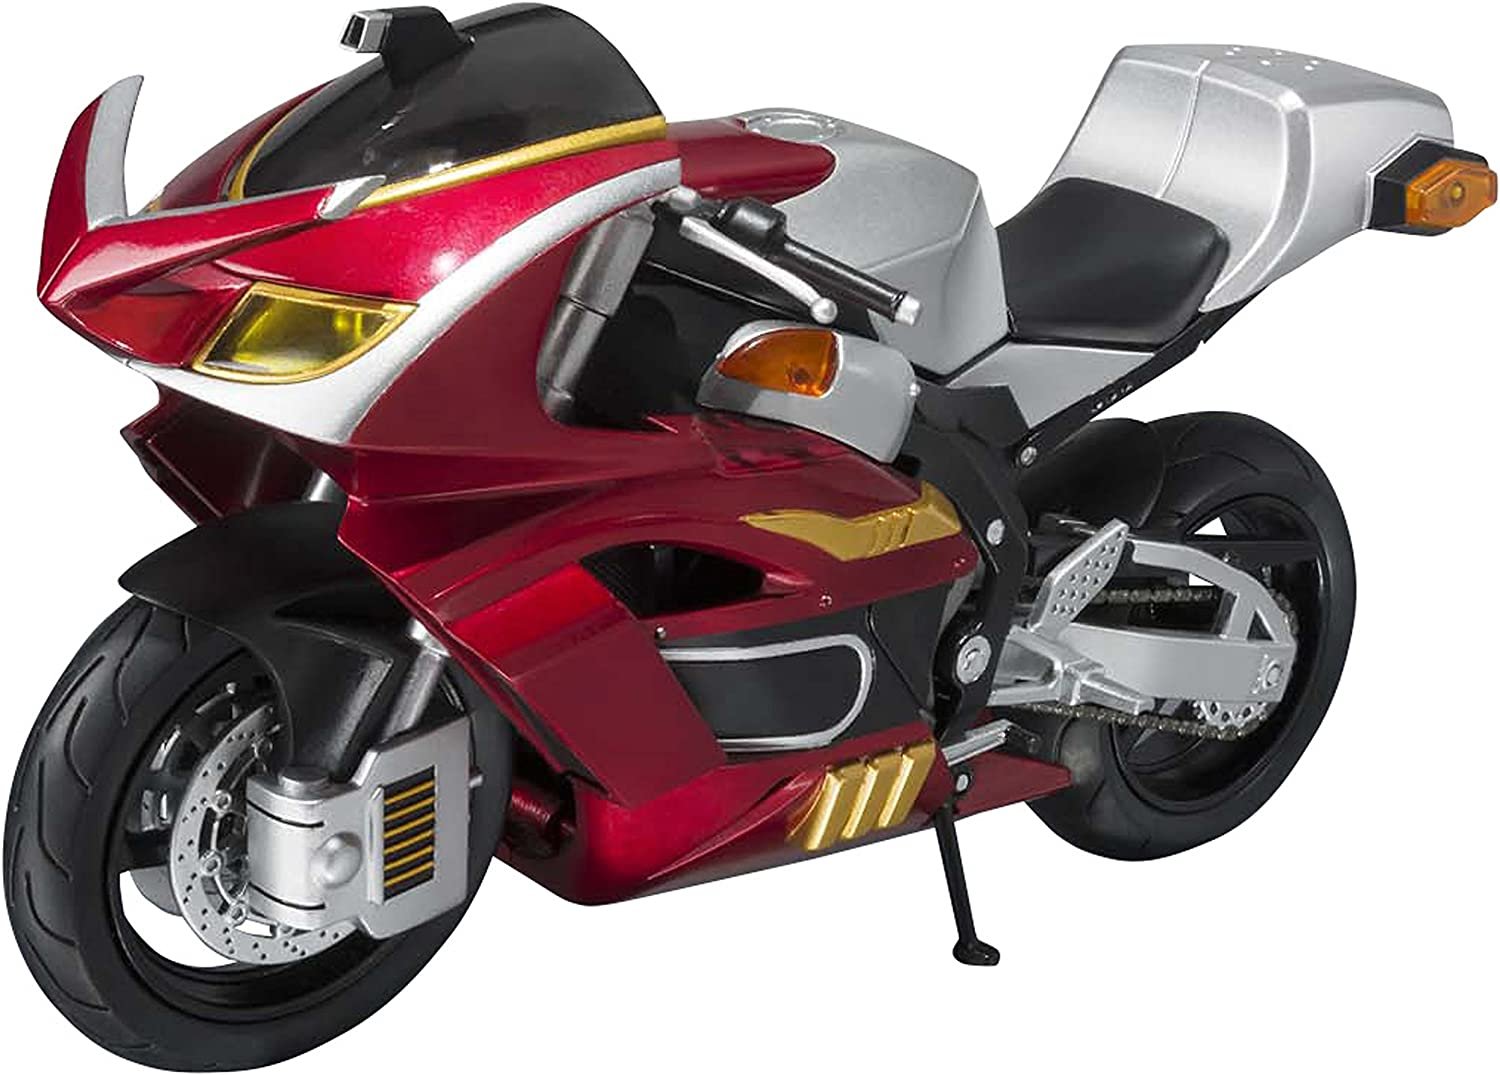 SH Figuarts Kamen Rider Kabuto Kabuto Extender about 165mm ABSPVCpainted action figure